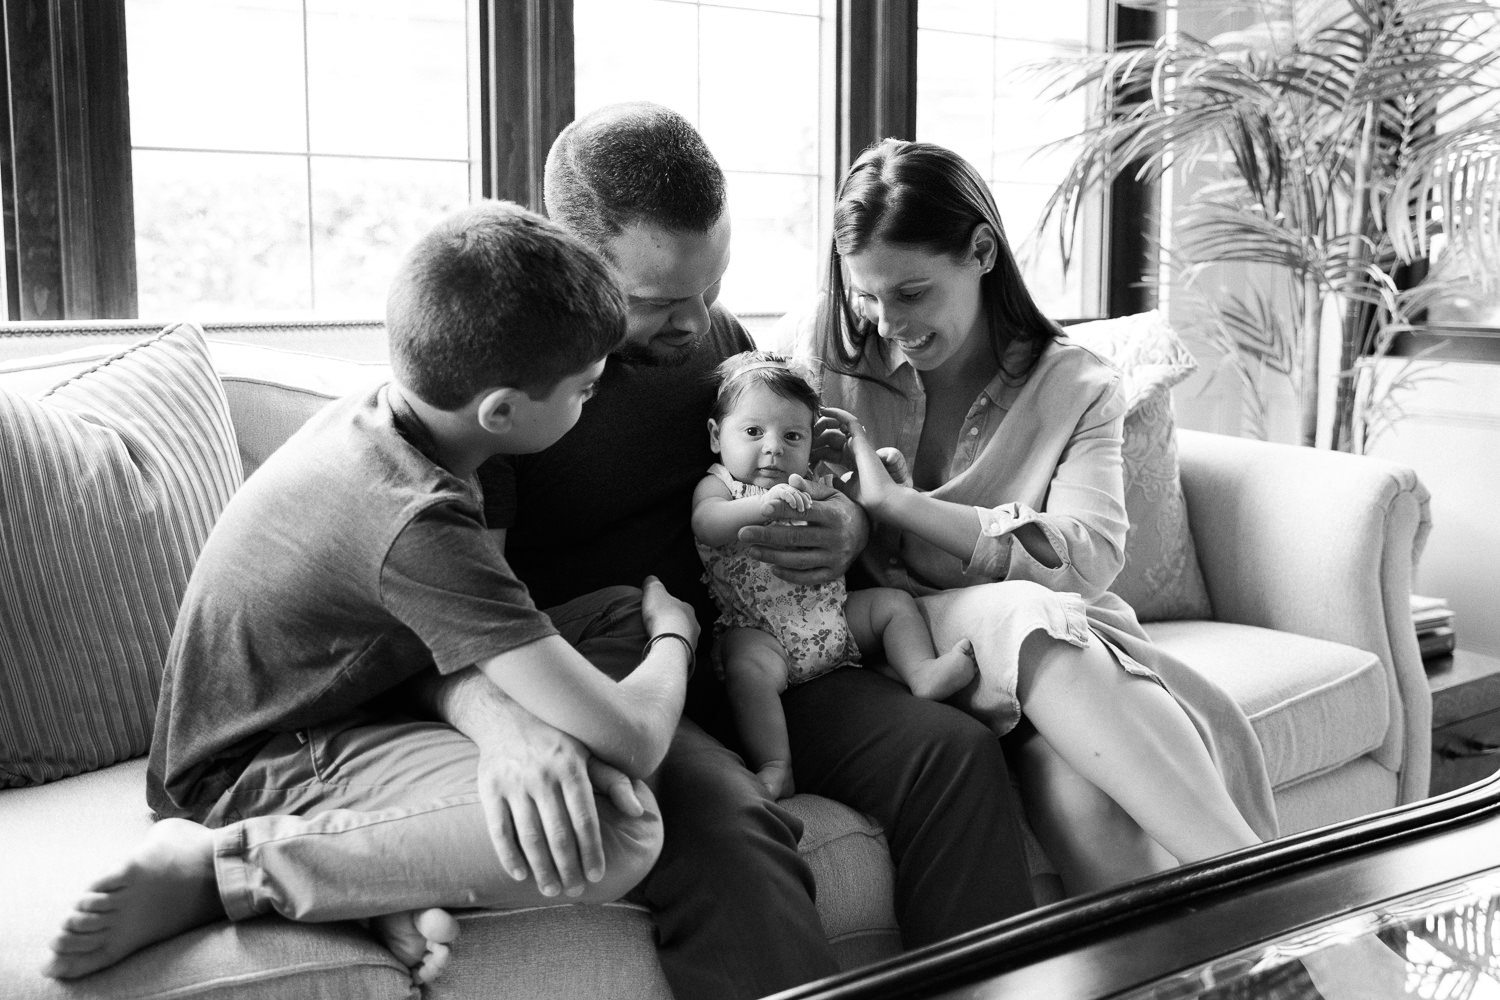 family of four sitting on couch, mom, dad and 9 year old son looking at 2 month old baby daughter in father's lap - Barrie Lifestyle Photos